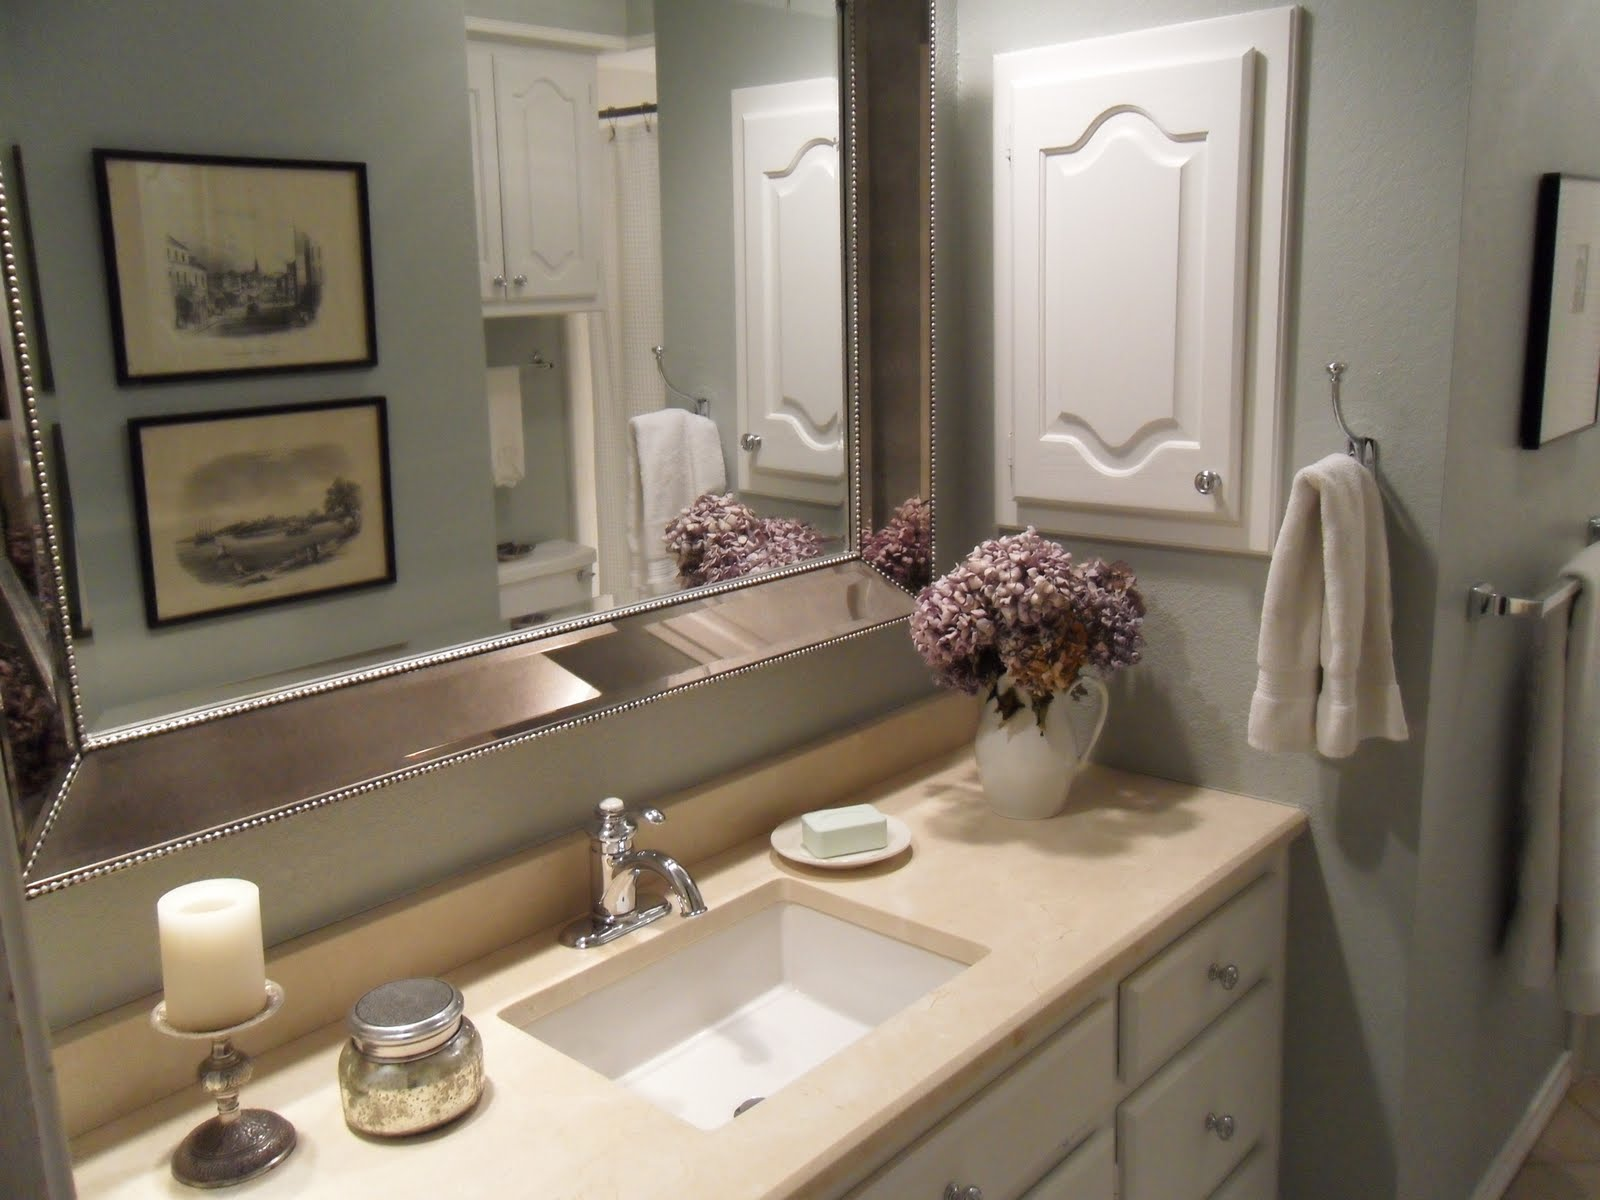 Tattered style bathroom makeover before and after for Bathroom makeover ideas